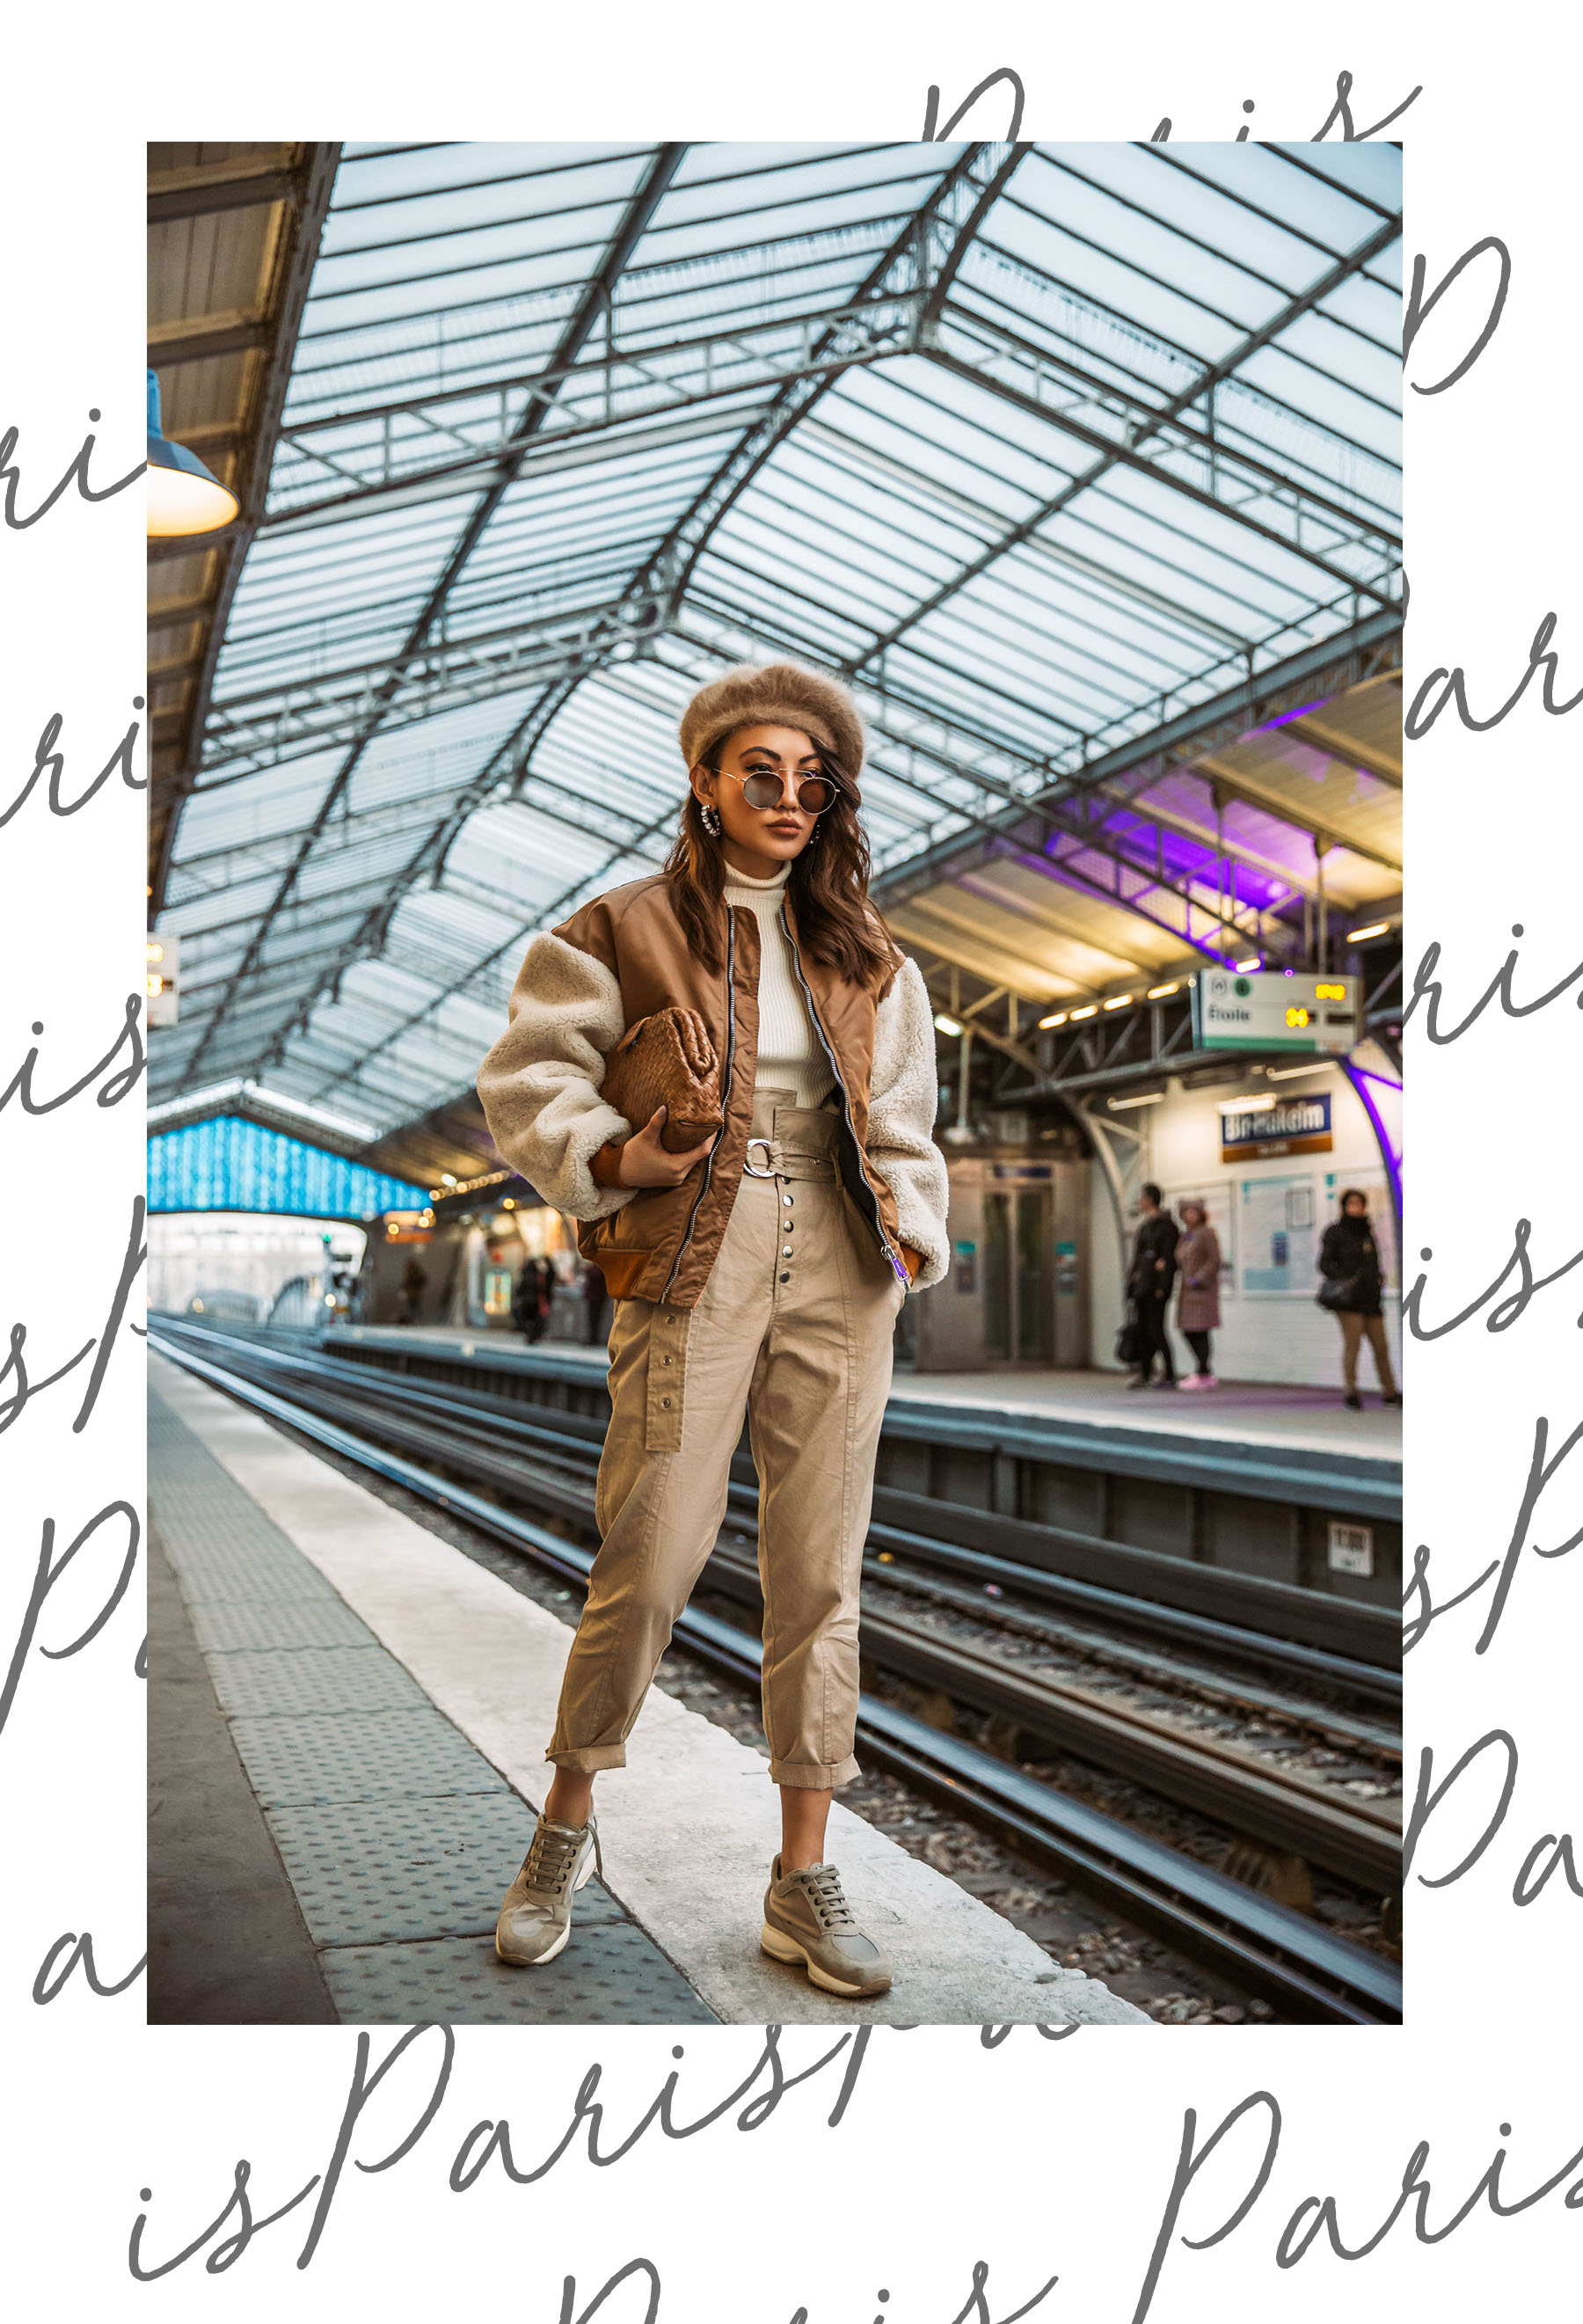 How to Experience Paris like a Local - Subway station in Paris, Paris Metro // Notjessfashion.com